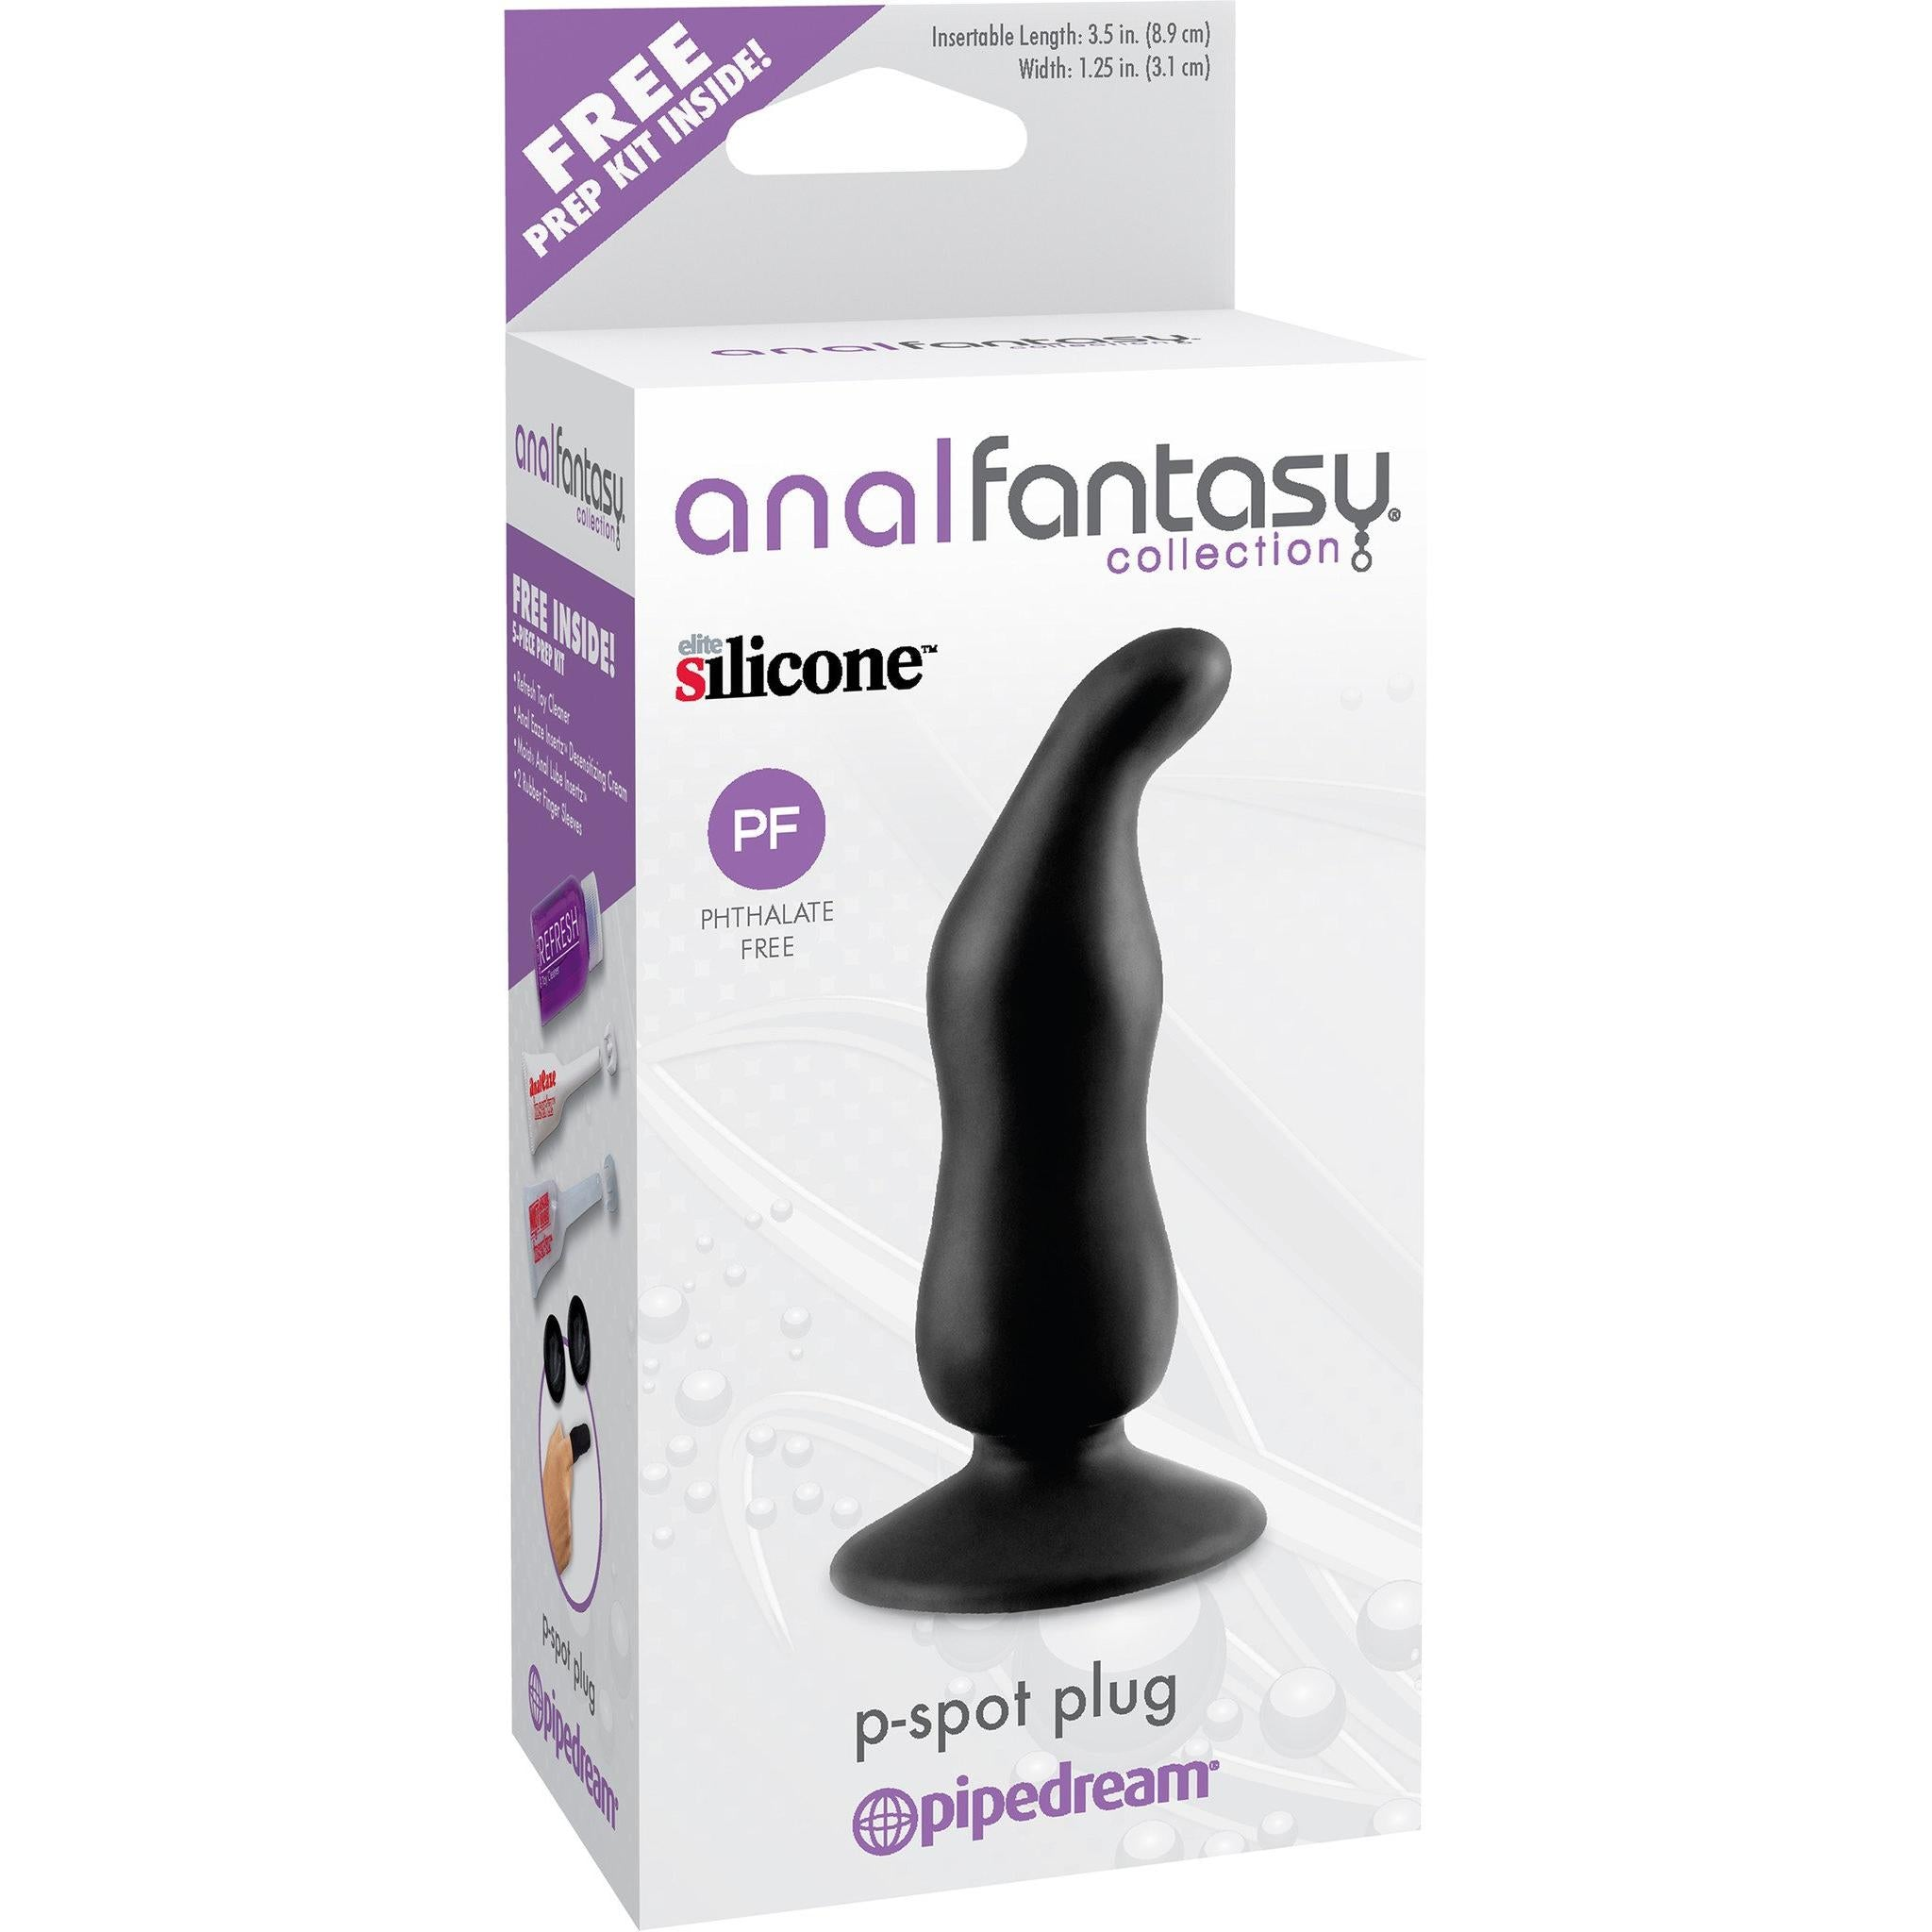 Anal Fantasy Collection P Spot Plug + FREE 5-Piece Prep Kit - Gay Men's Sex Toys - Adam's Toy Box